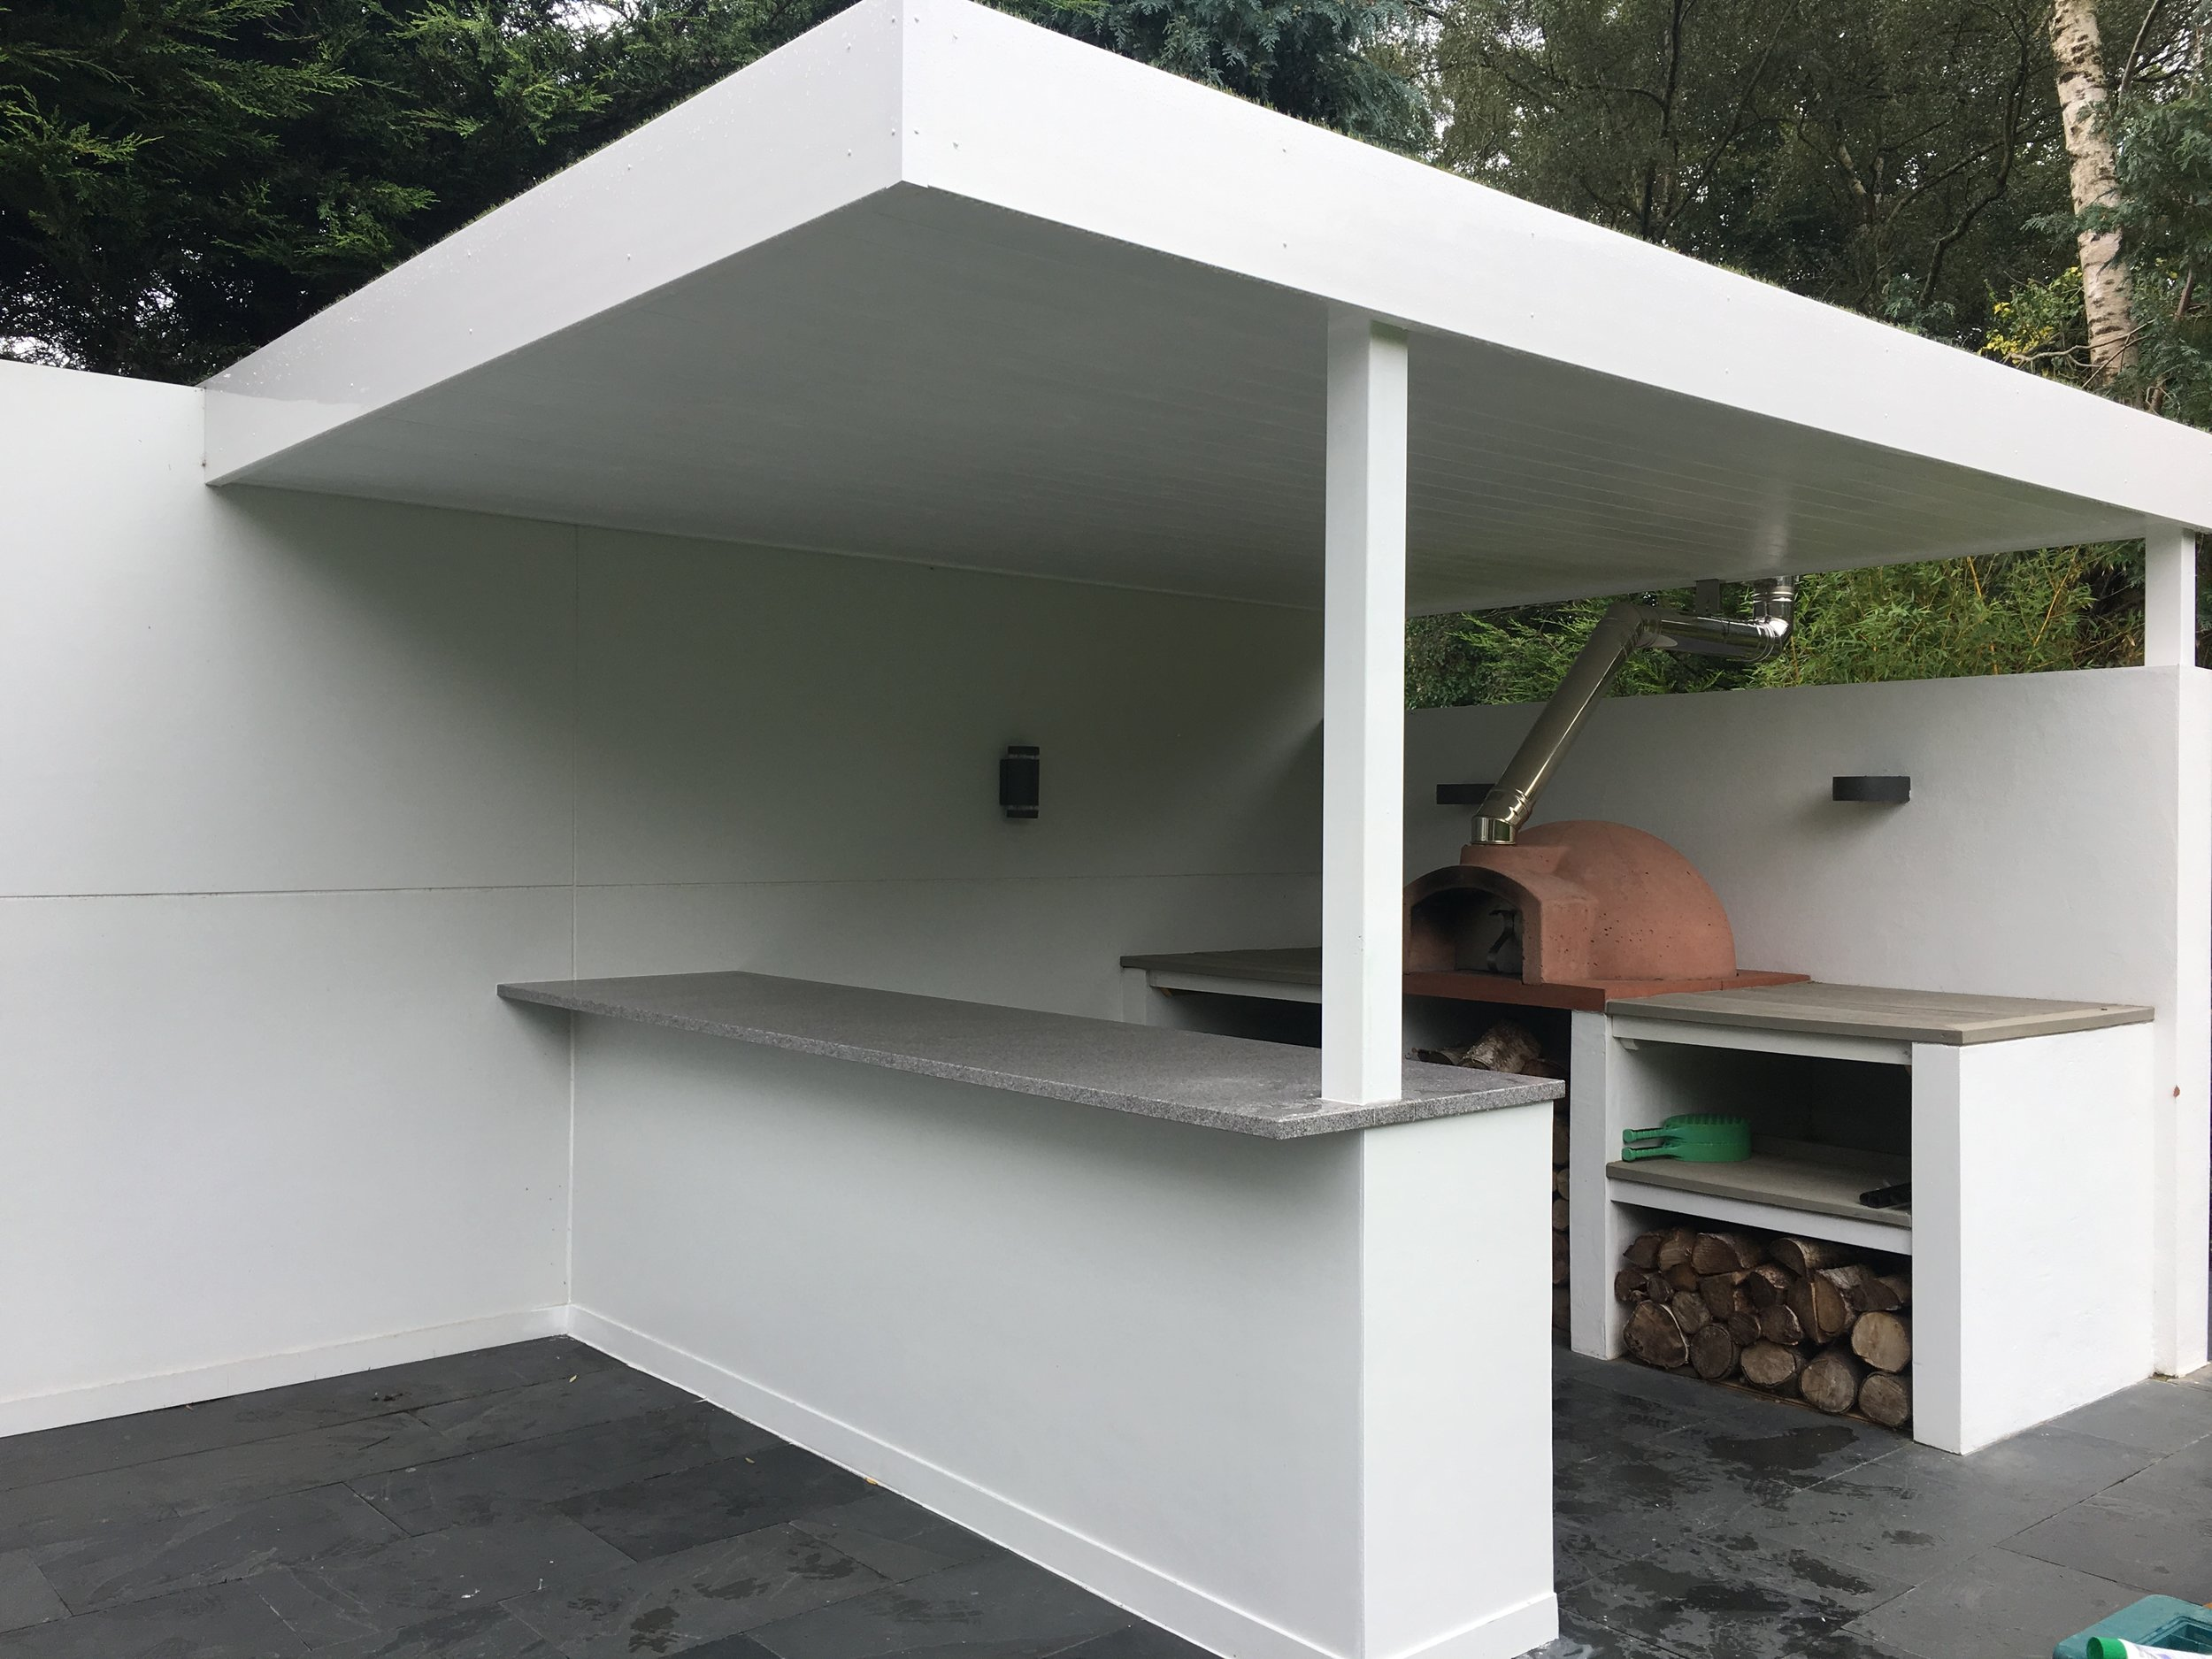 Bespoke Outdoor Pizza Area in Branksome